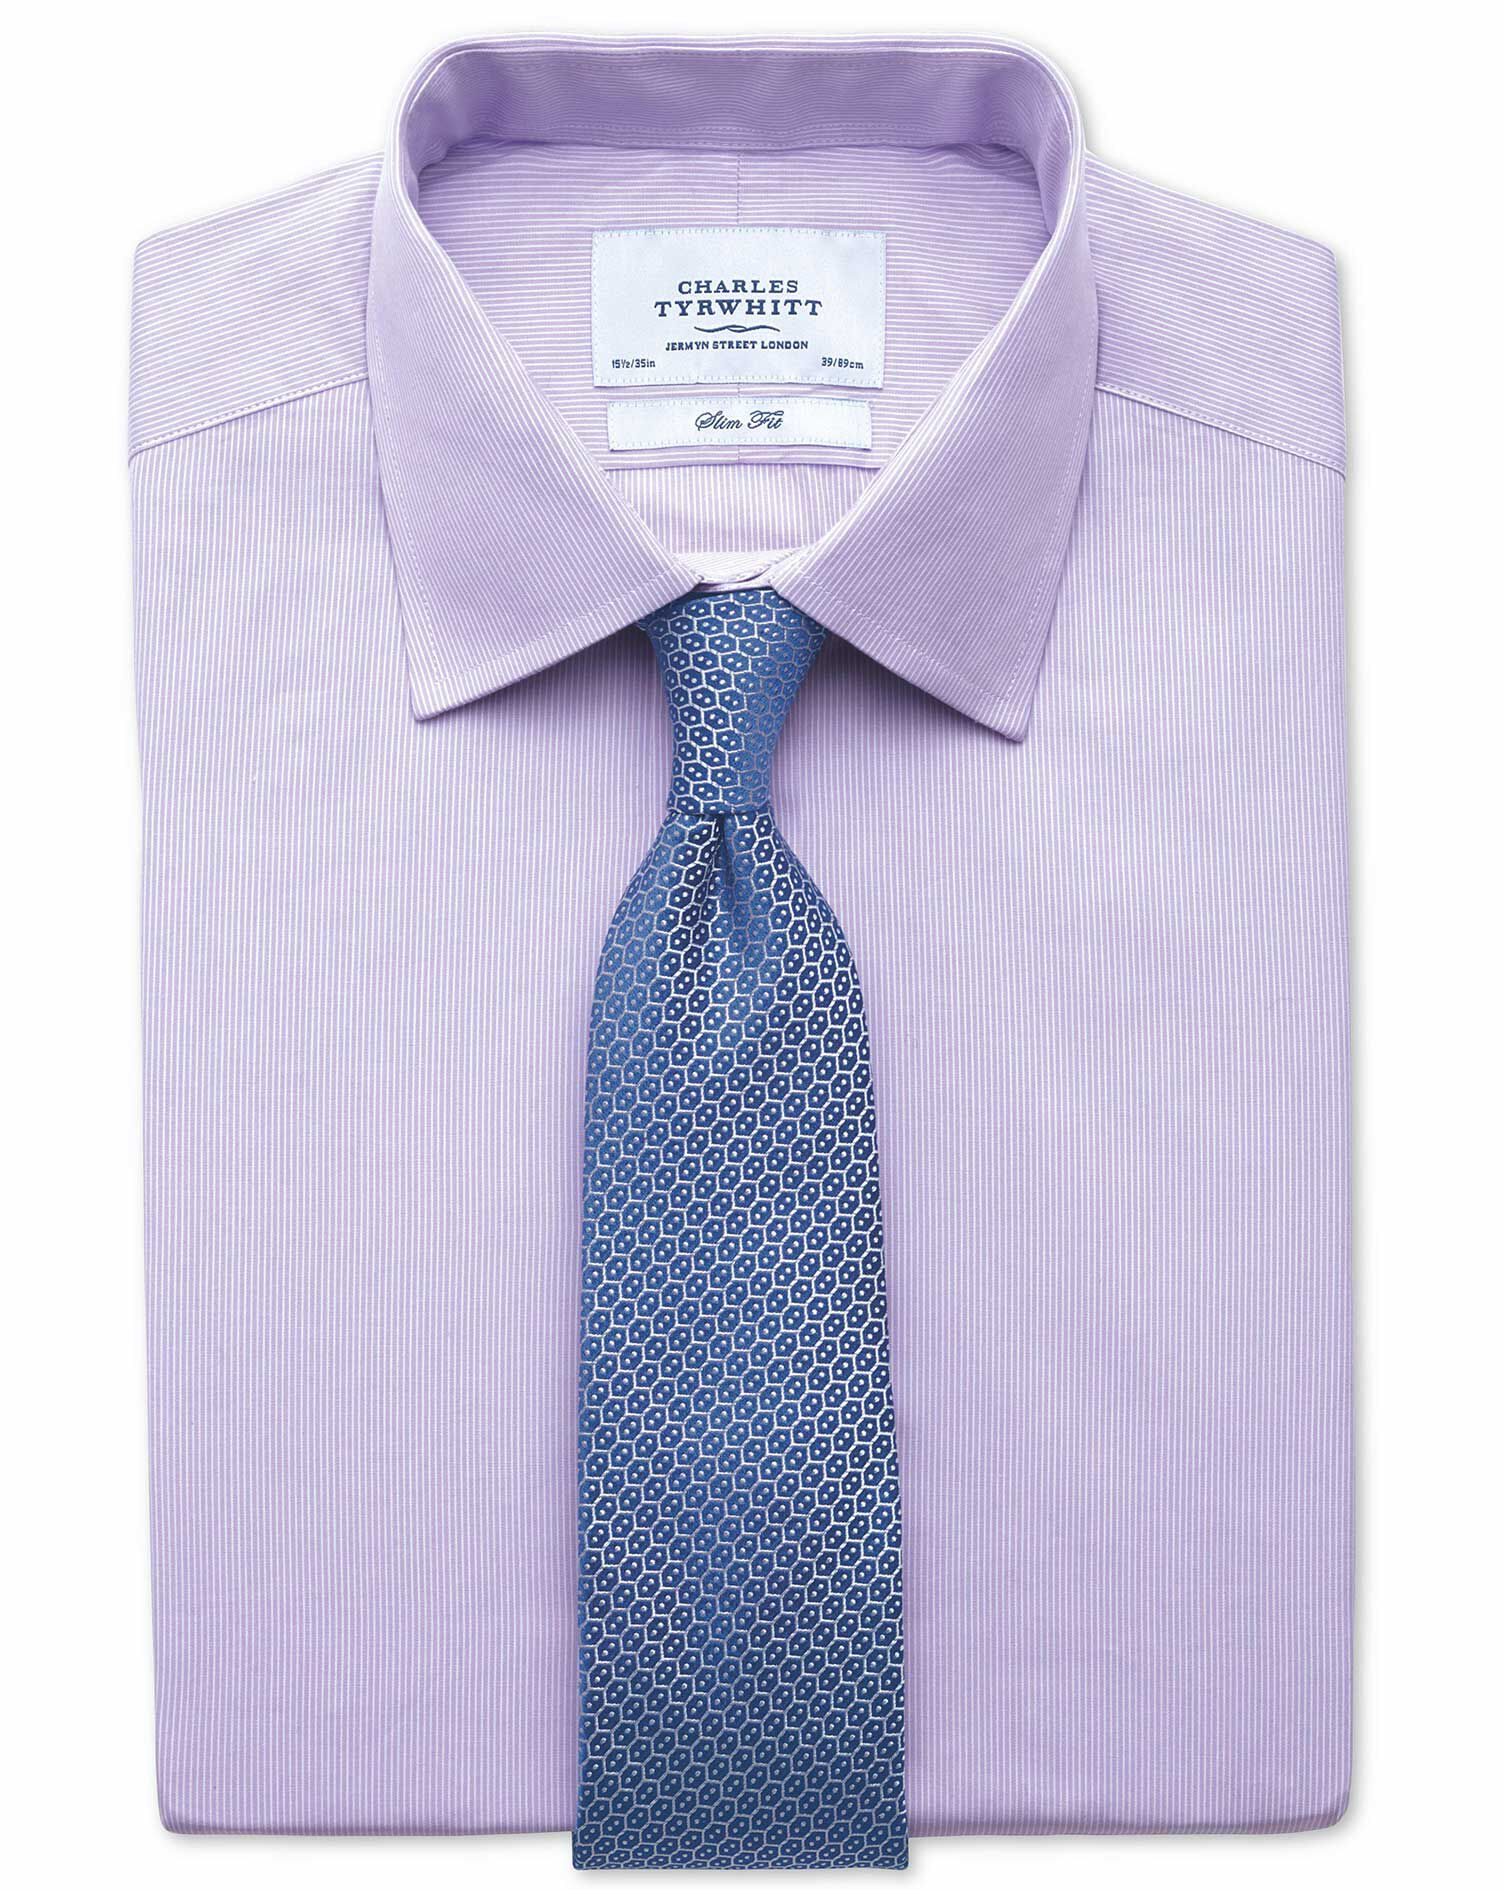 Classic Fit Fine Stripe Lilac Cotton Formal Shirt Double Cuff Size 15/35 by Charles Tyrwhitt